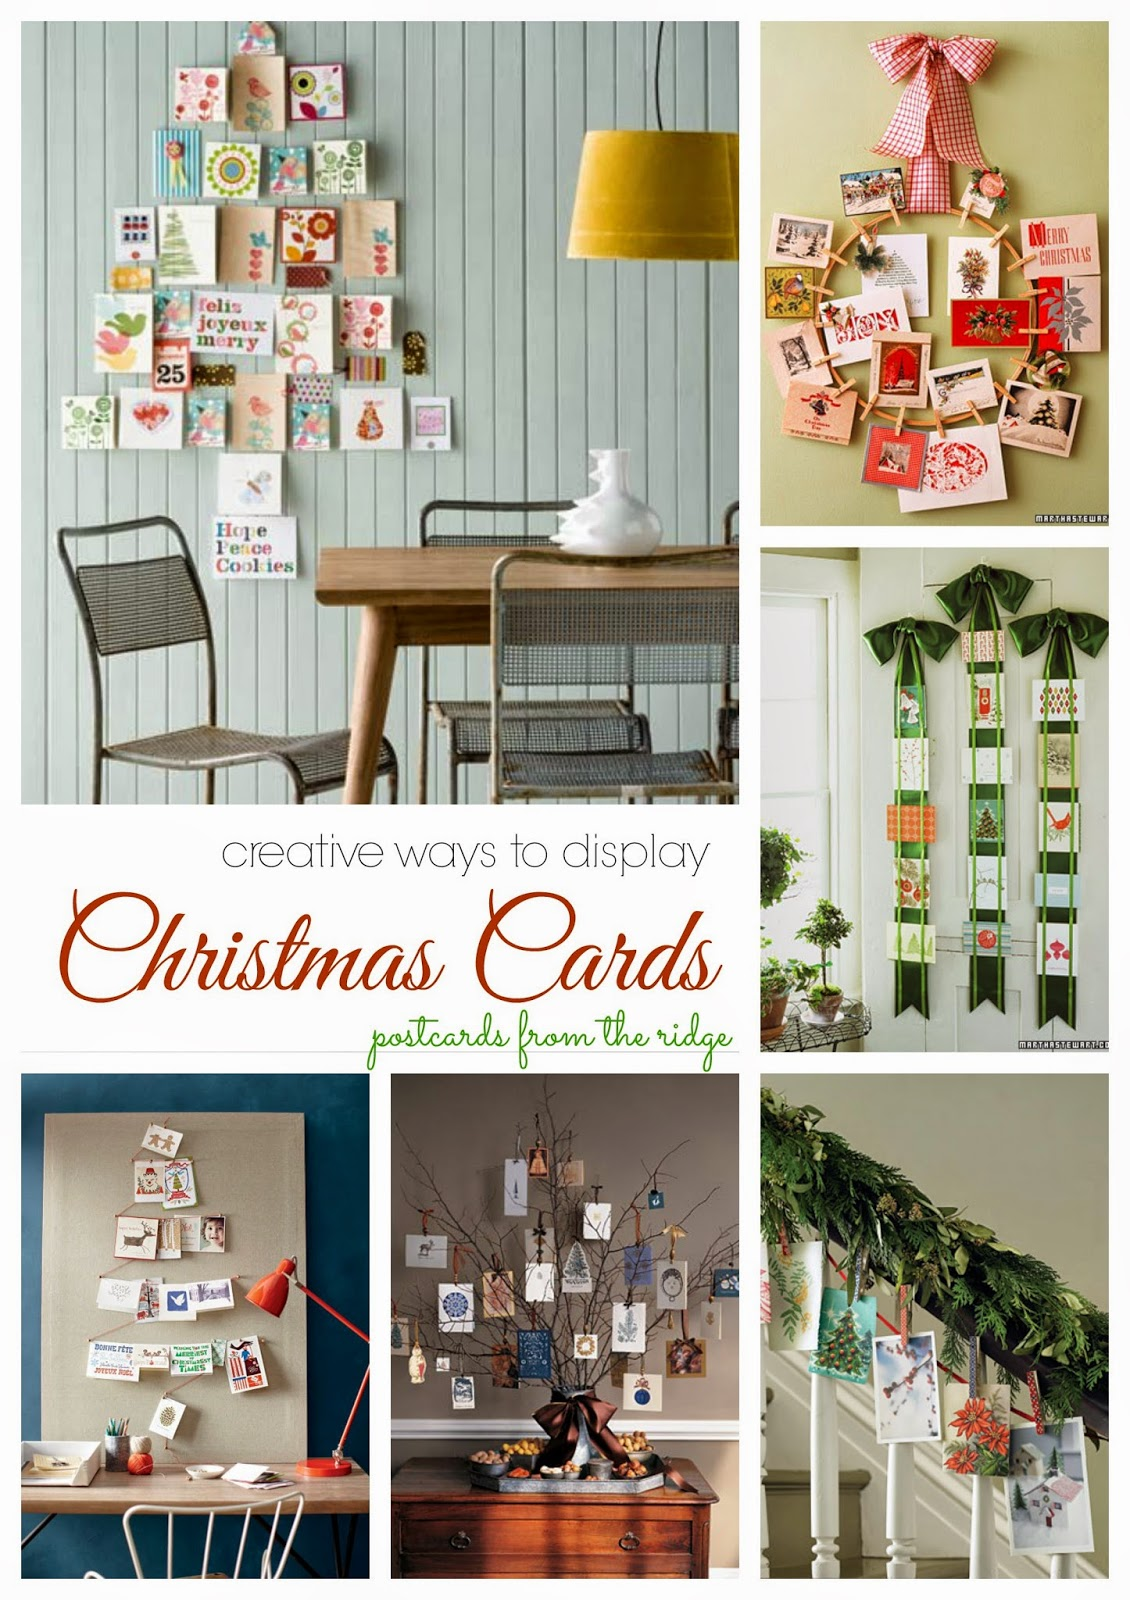 Creative Christmas card display ideas + a $25 discount on your cards